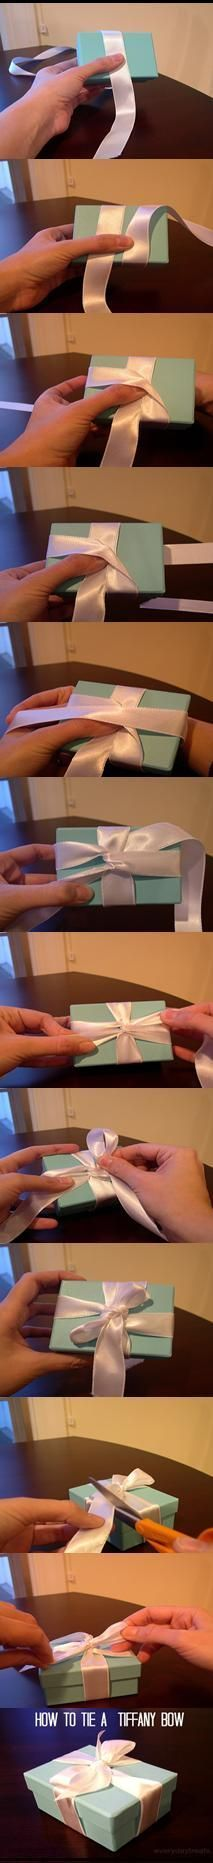 (A través de CASA REINAL) >>>> How to tie a Tiffany Bow